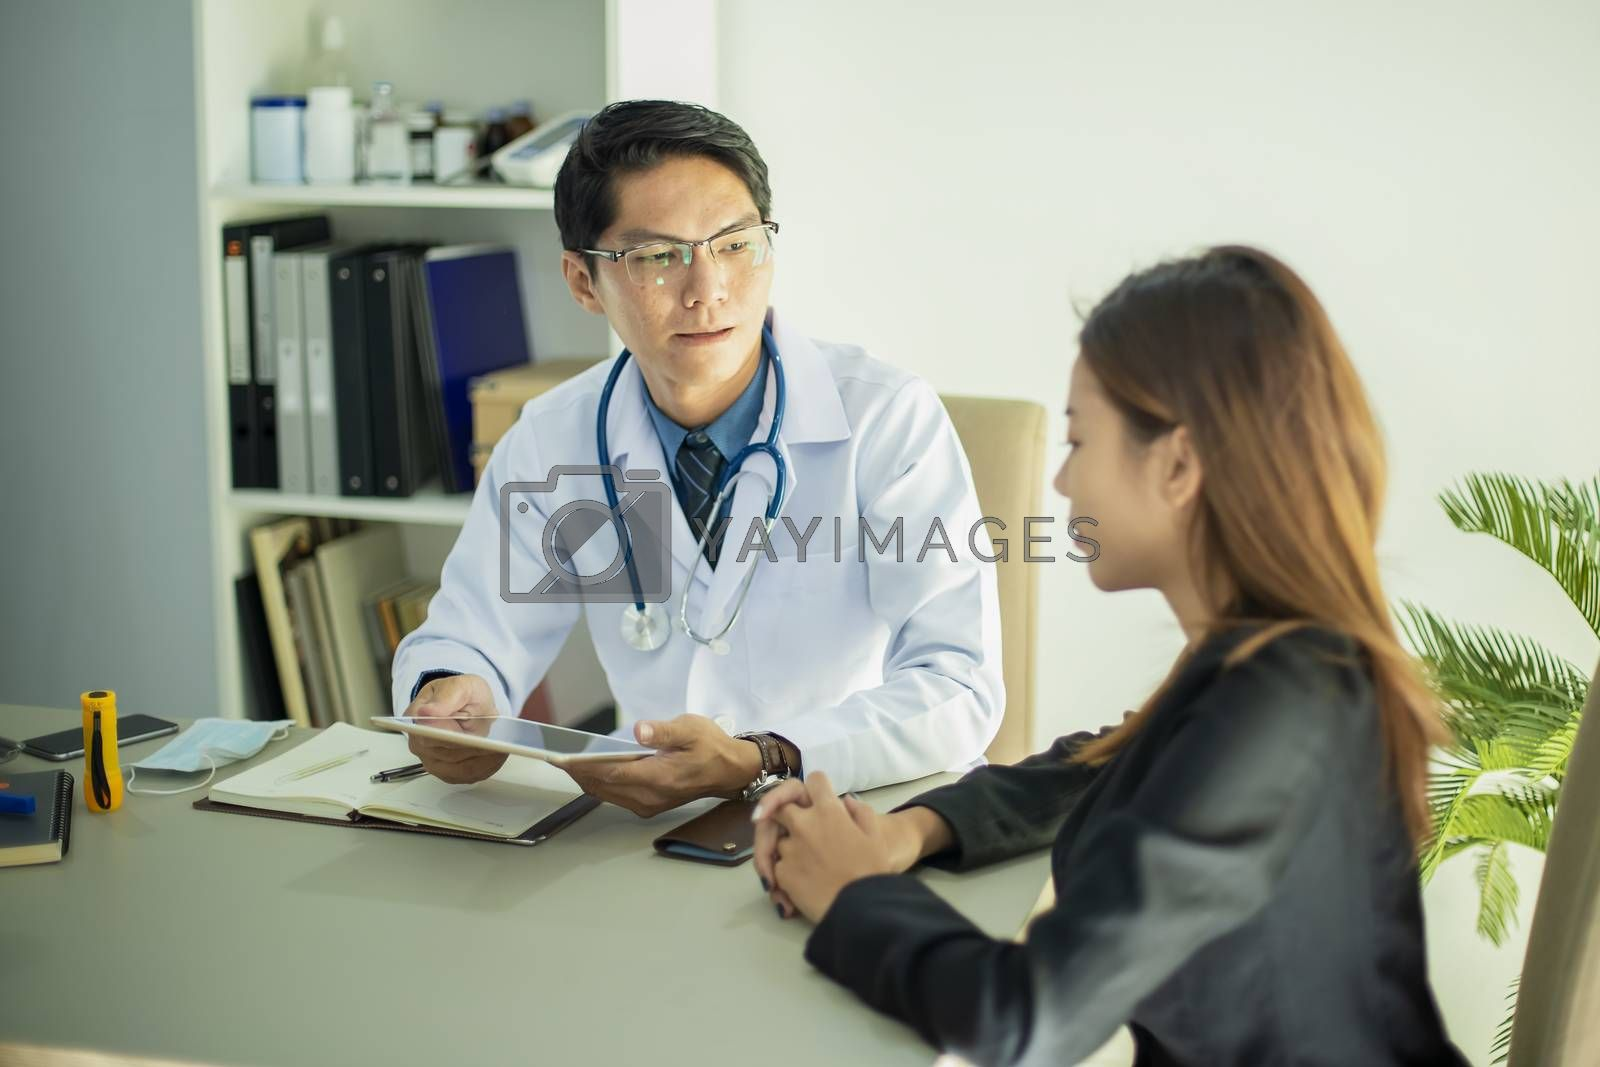 Portrait of a doctor consulting with a young woman about body health care and explain about the correct medication usage